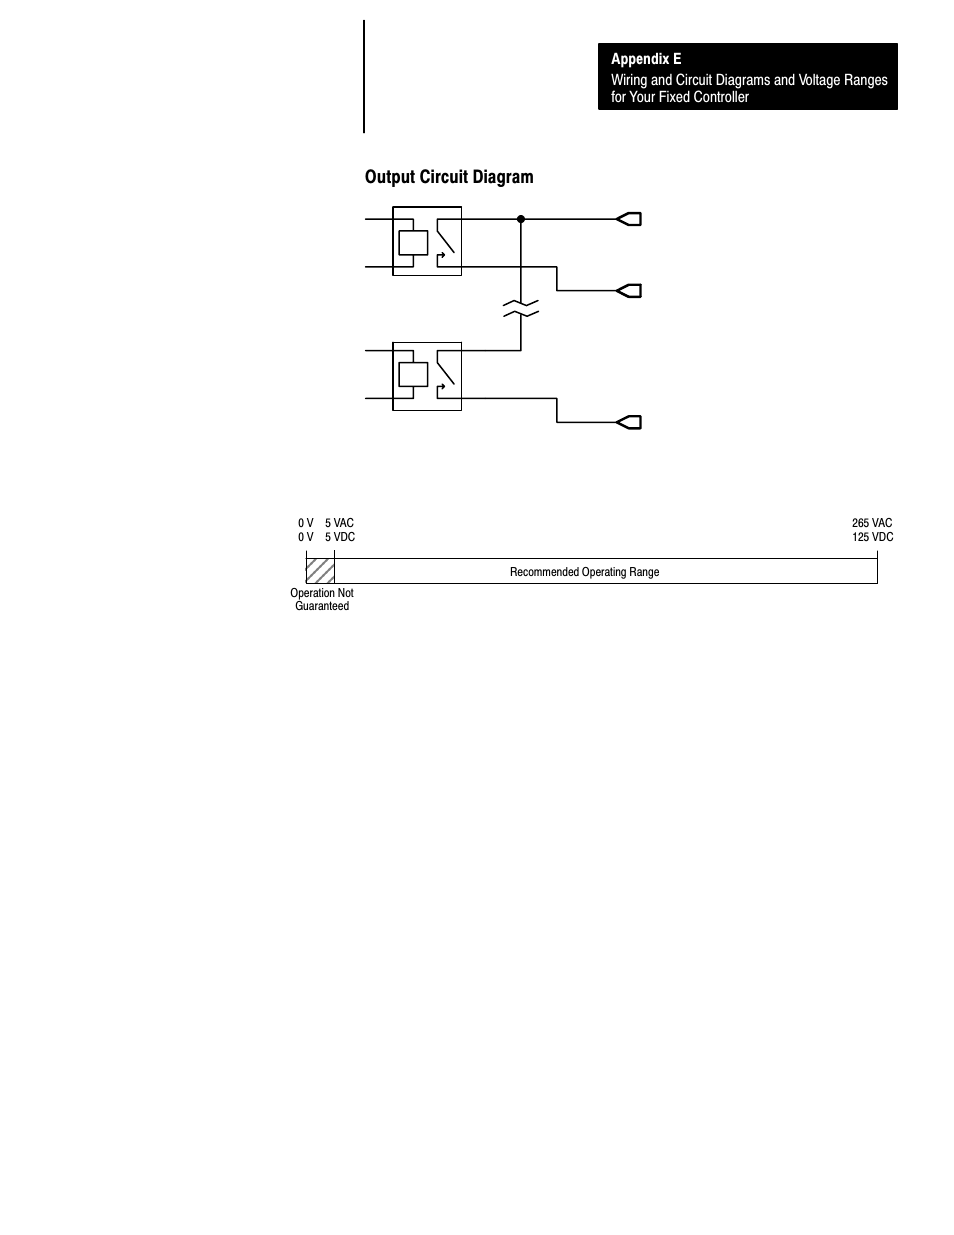 hight resolution of output circuit diagram e 39 operating voltage range rockwell automation 1747 l40 slc 500 fixed hardware style user manual page 182 223